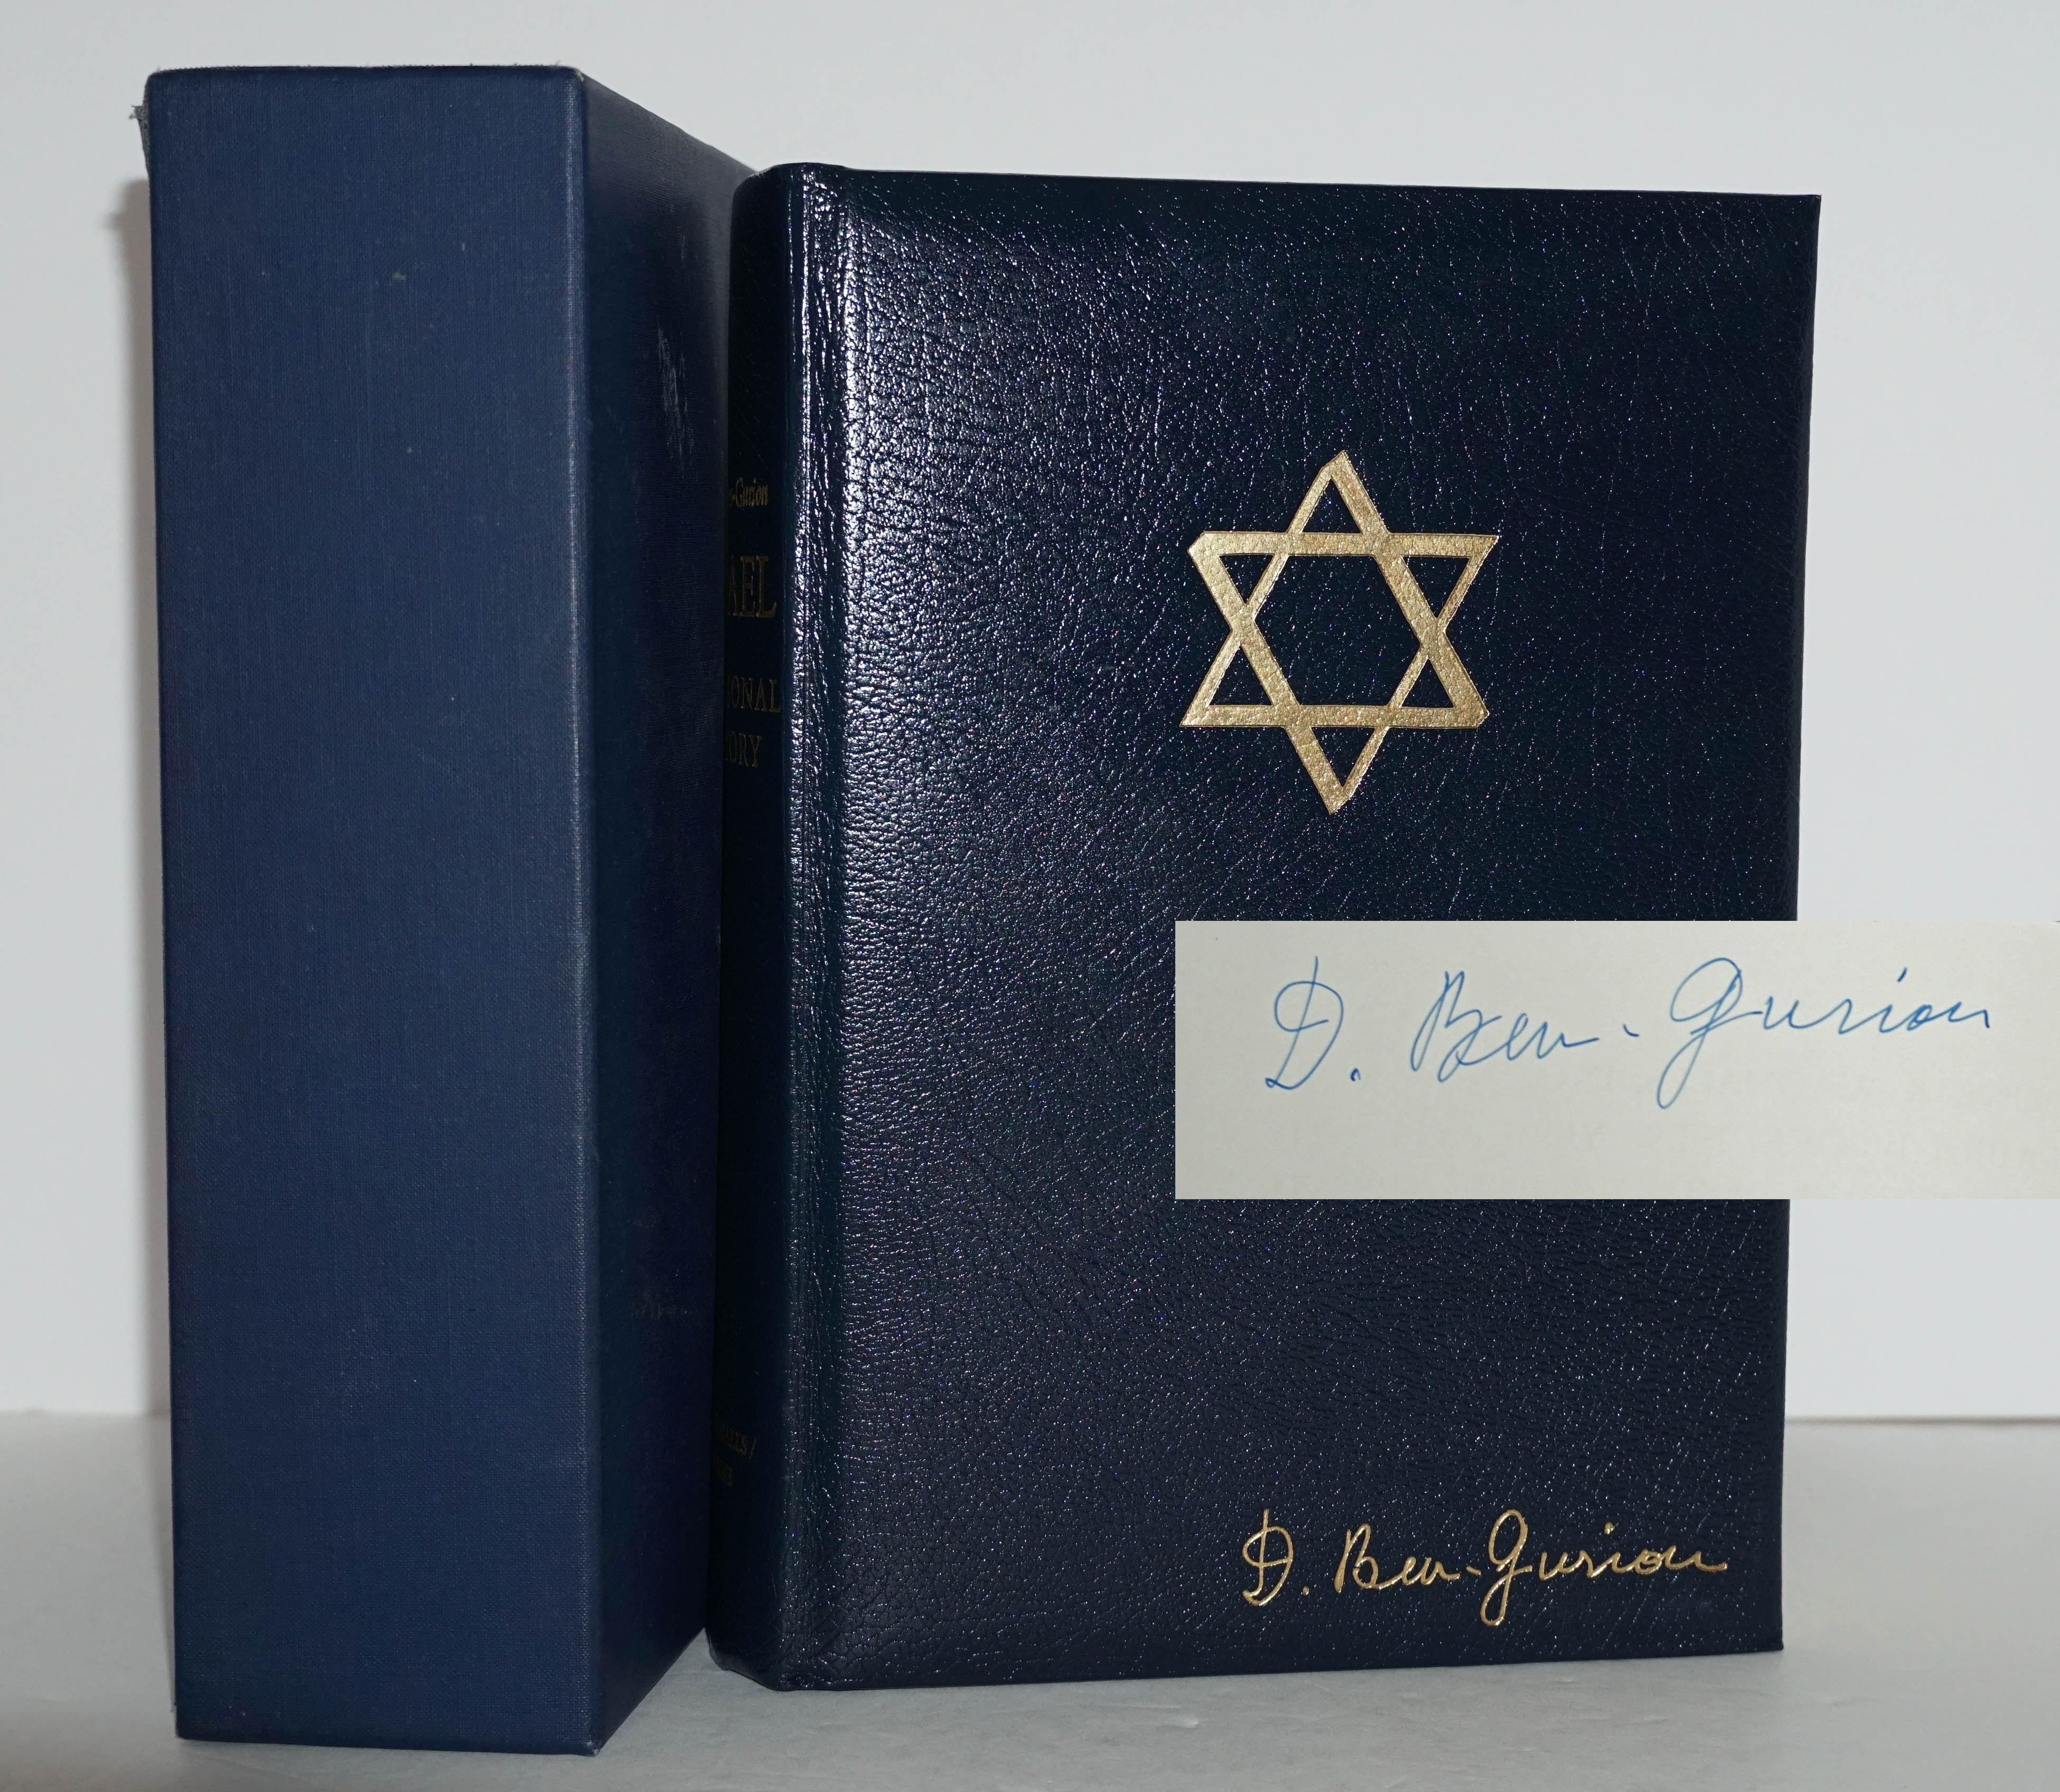 Israel: A Personal History, Signed by David Ben-Gurion